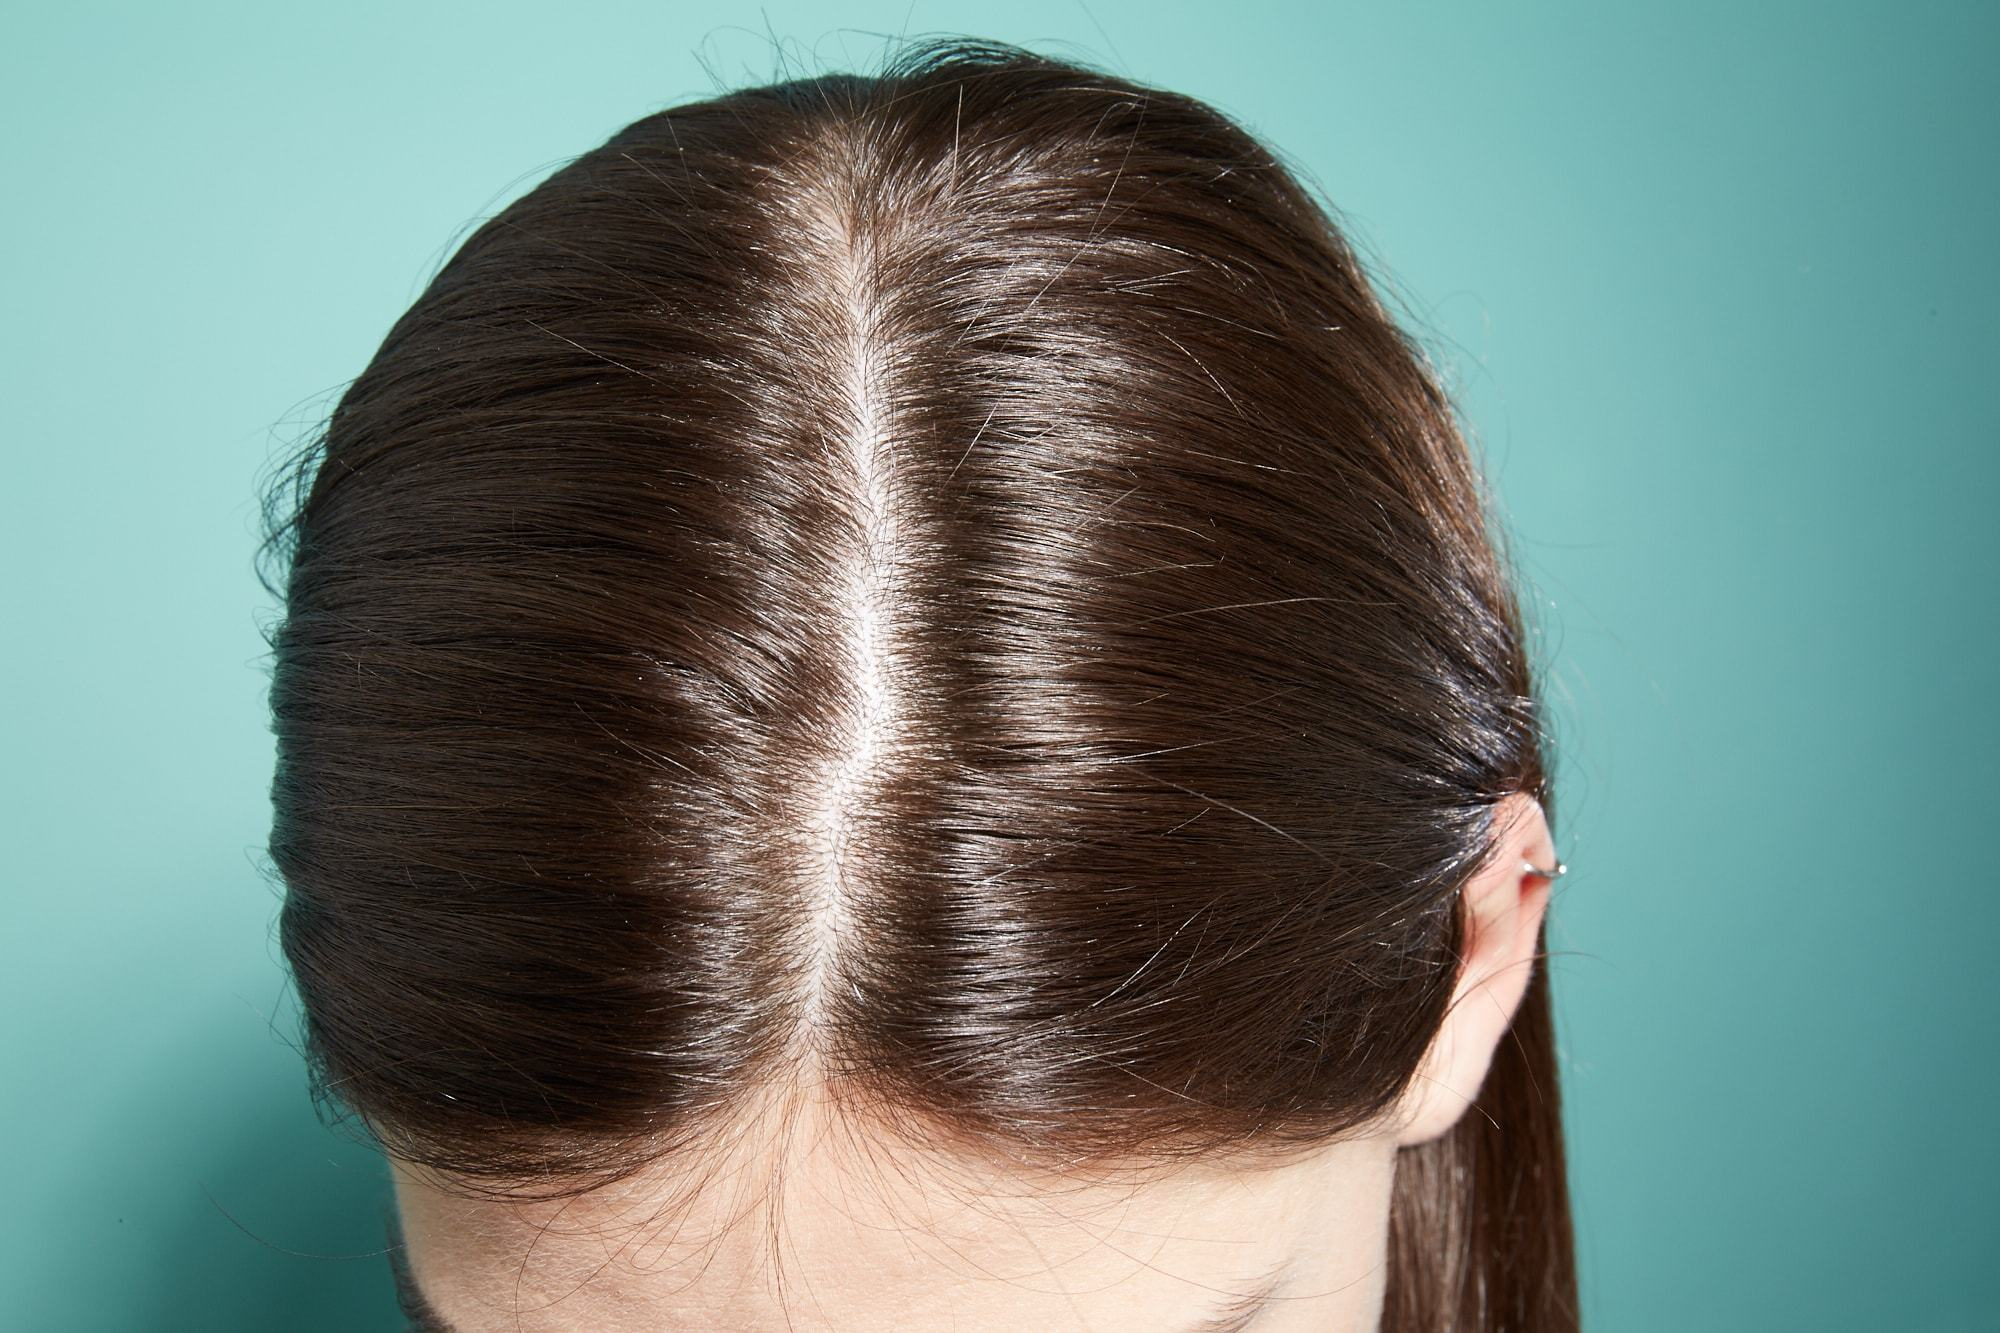 My hair is thinning: Close-up scalp shot of a brunette with straight hair